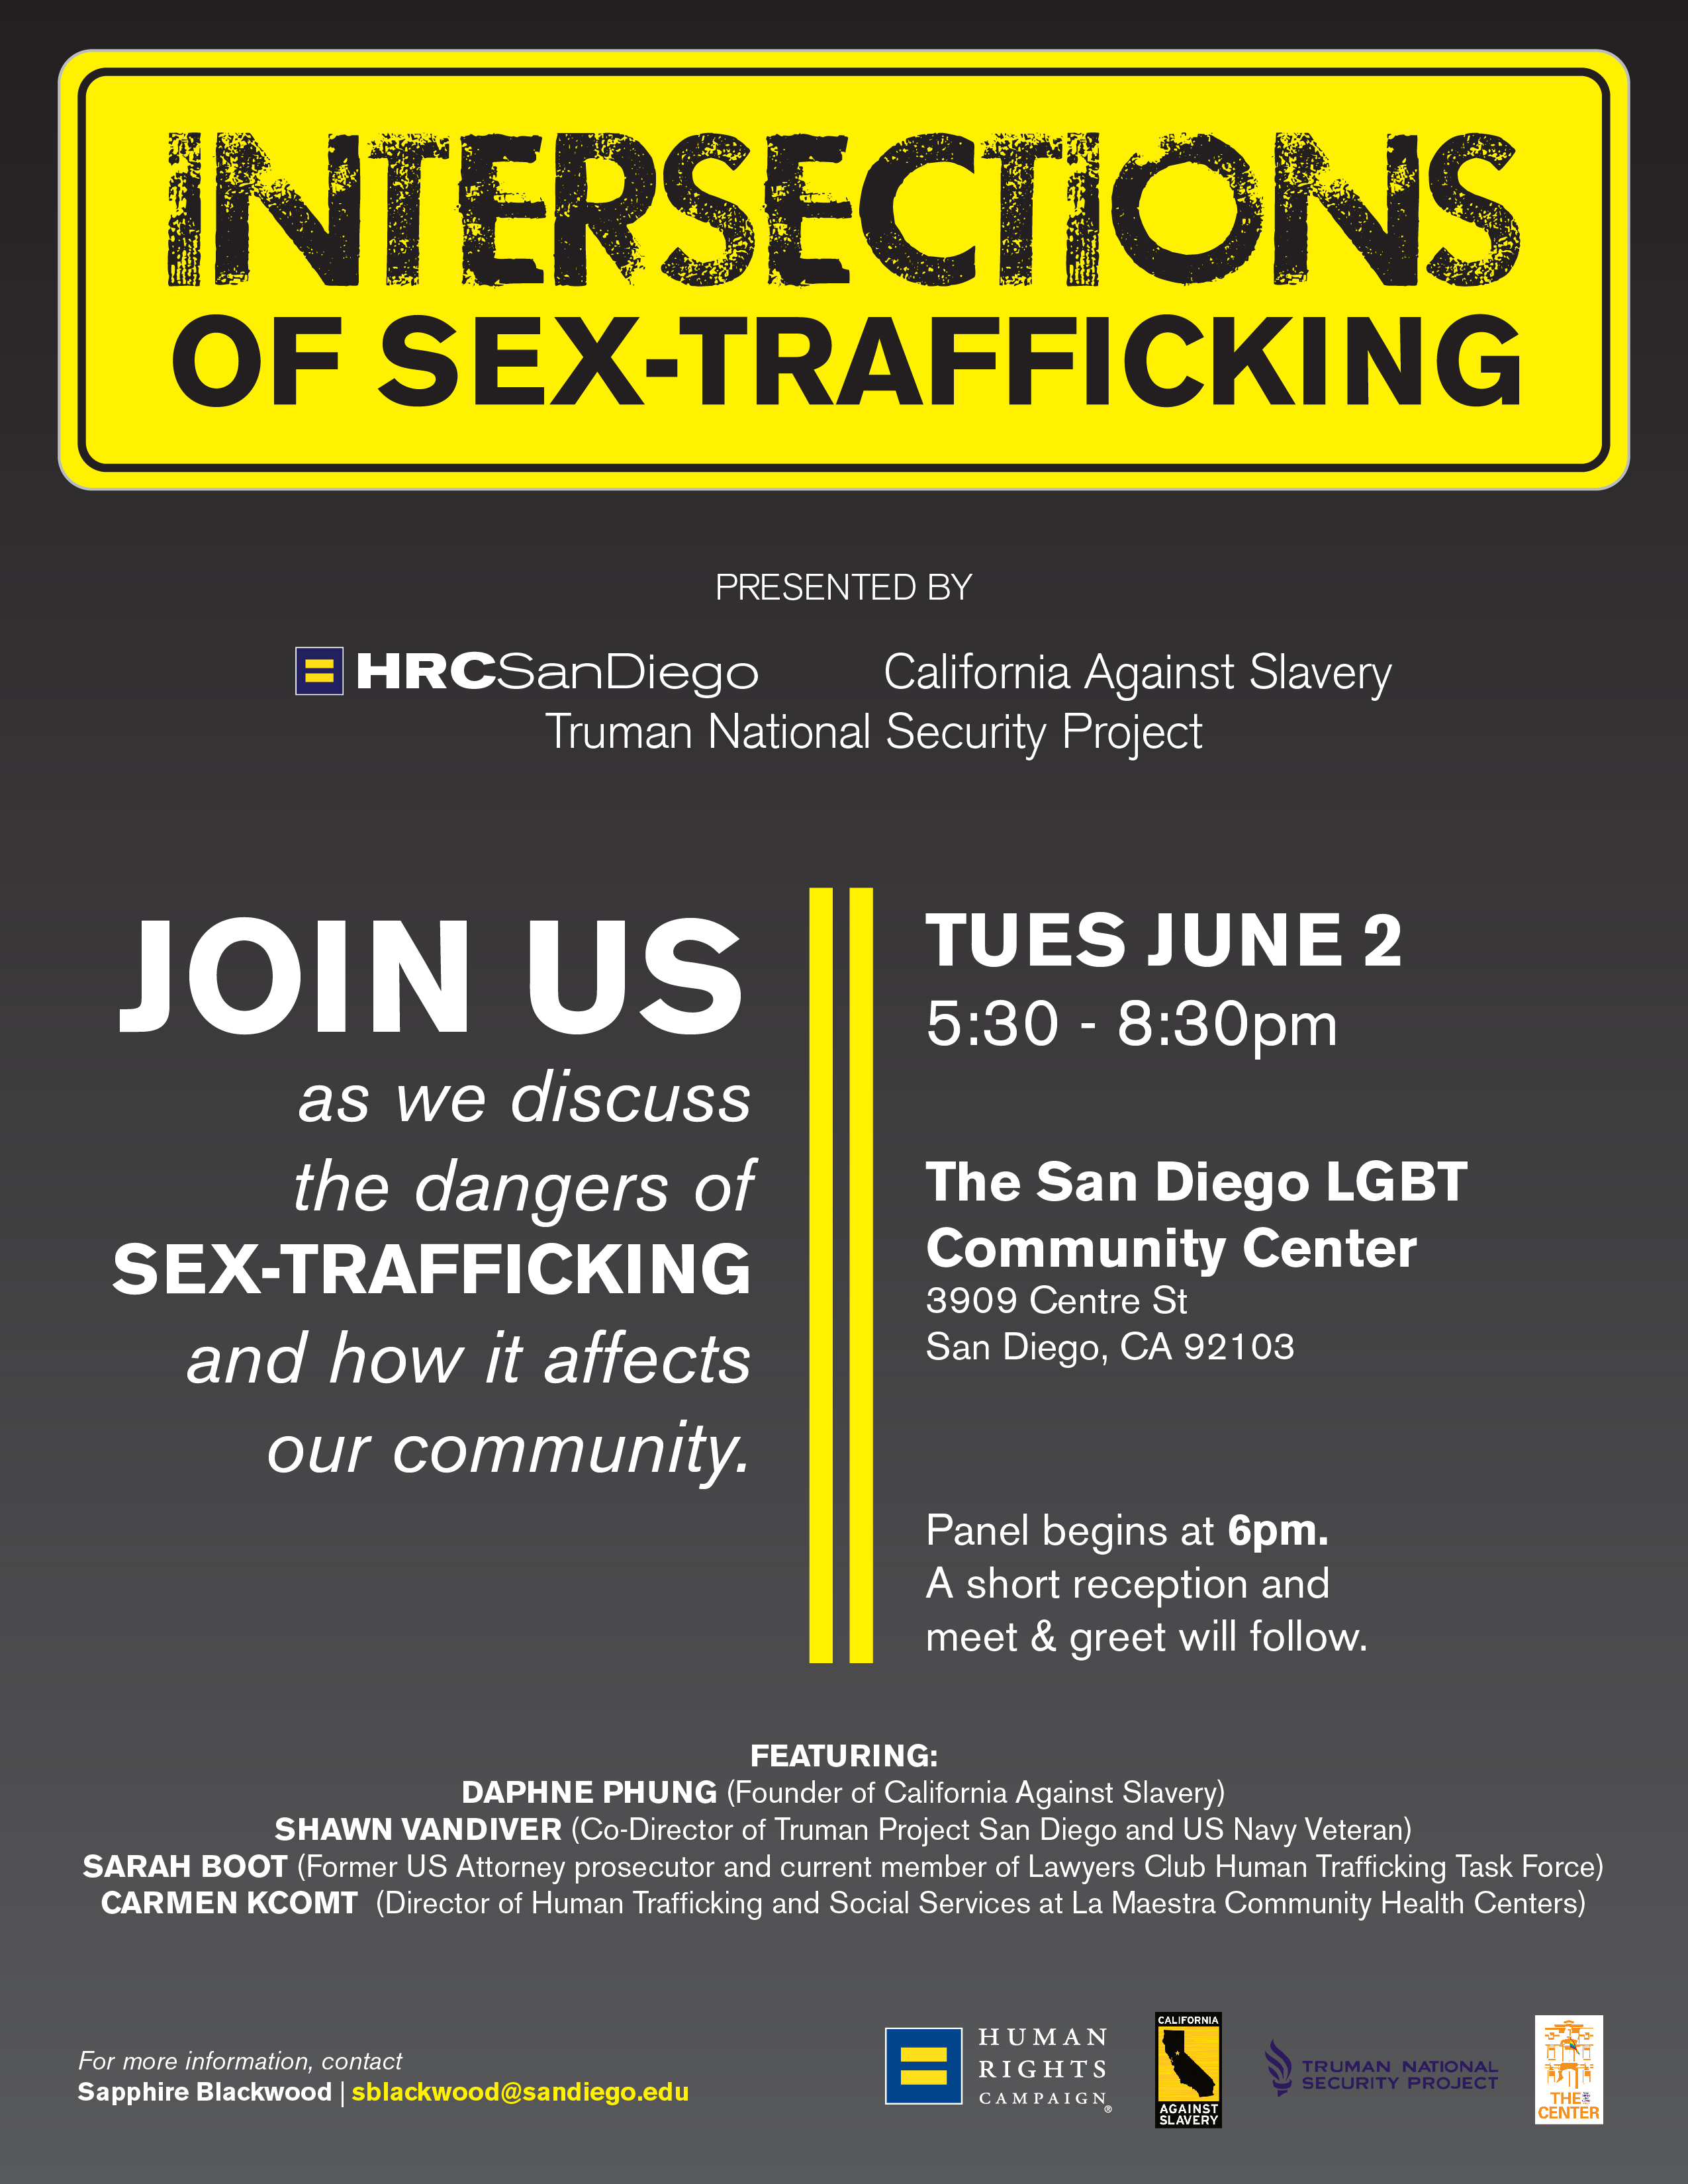 Intersections of Sex-Trafficking - Tuesday Jun 2